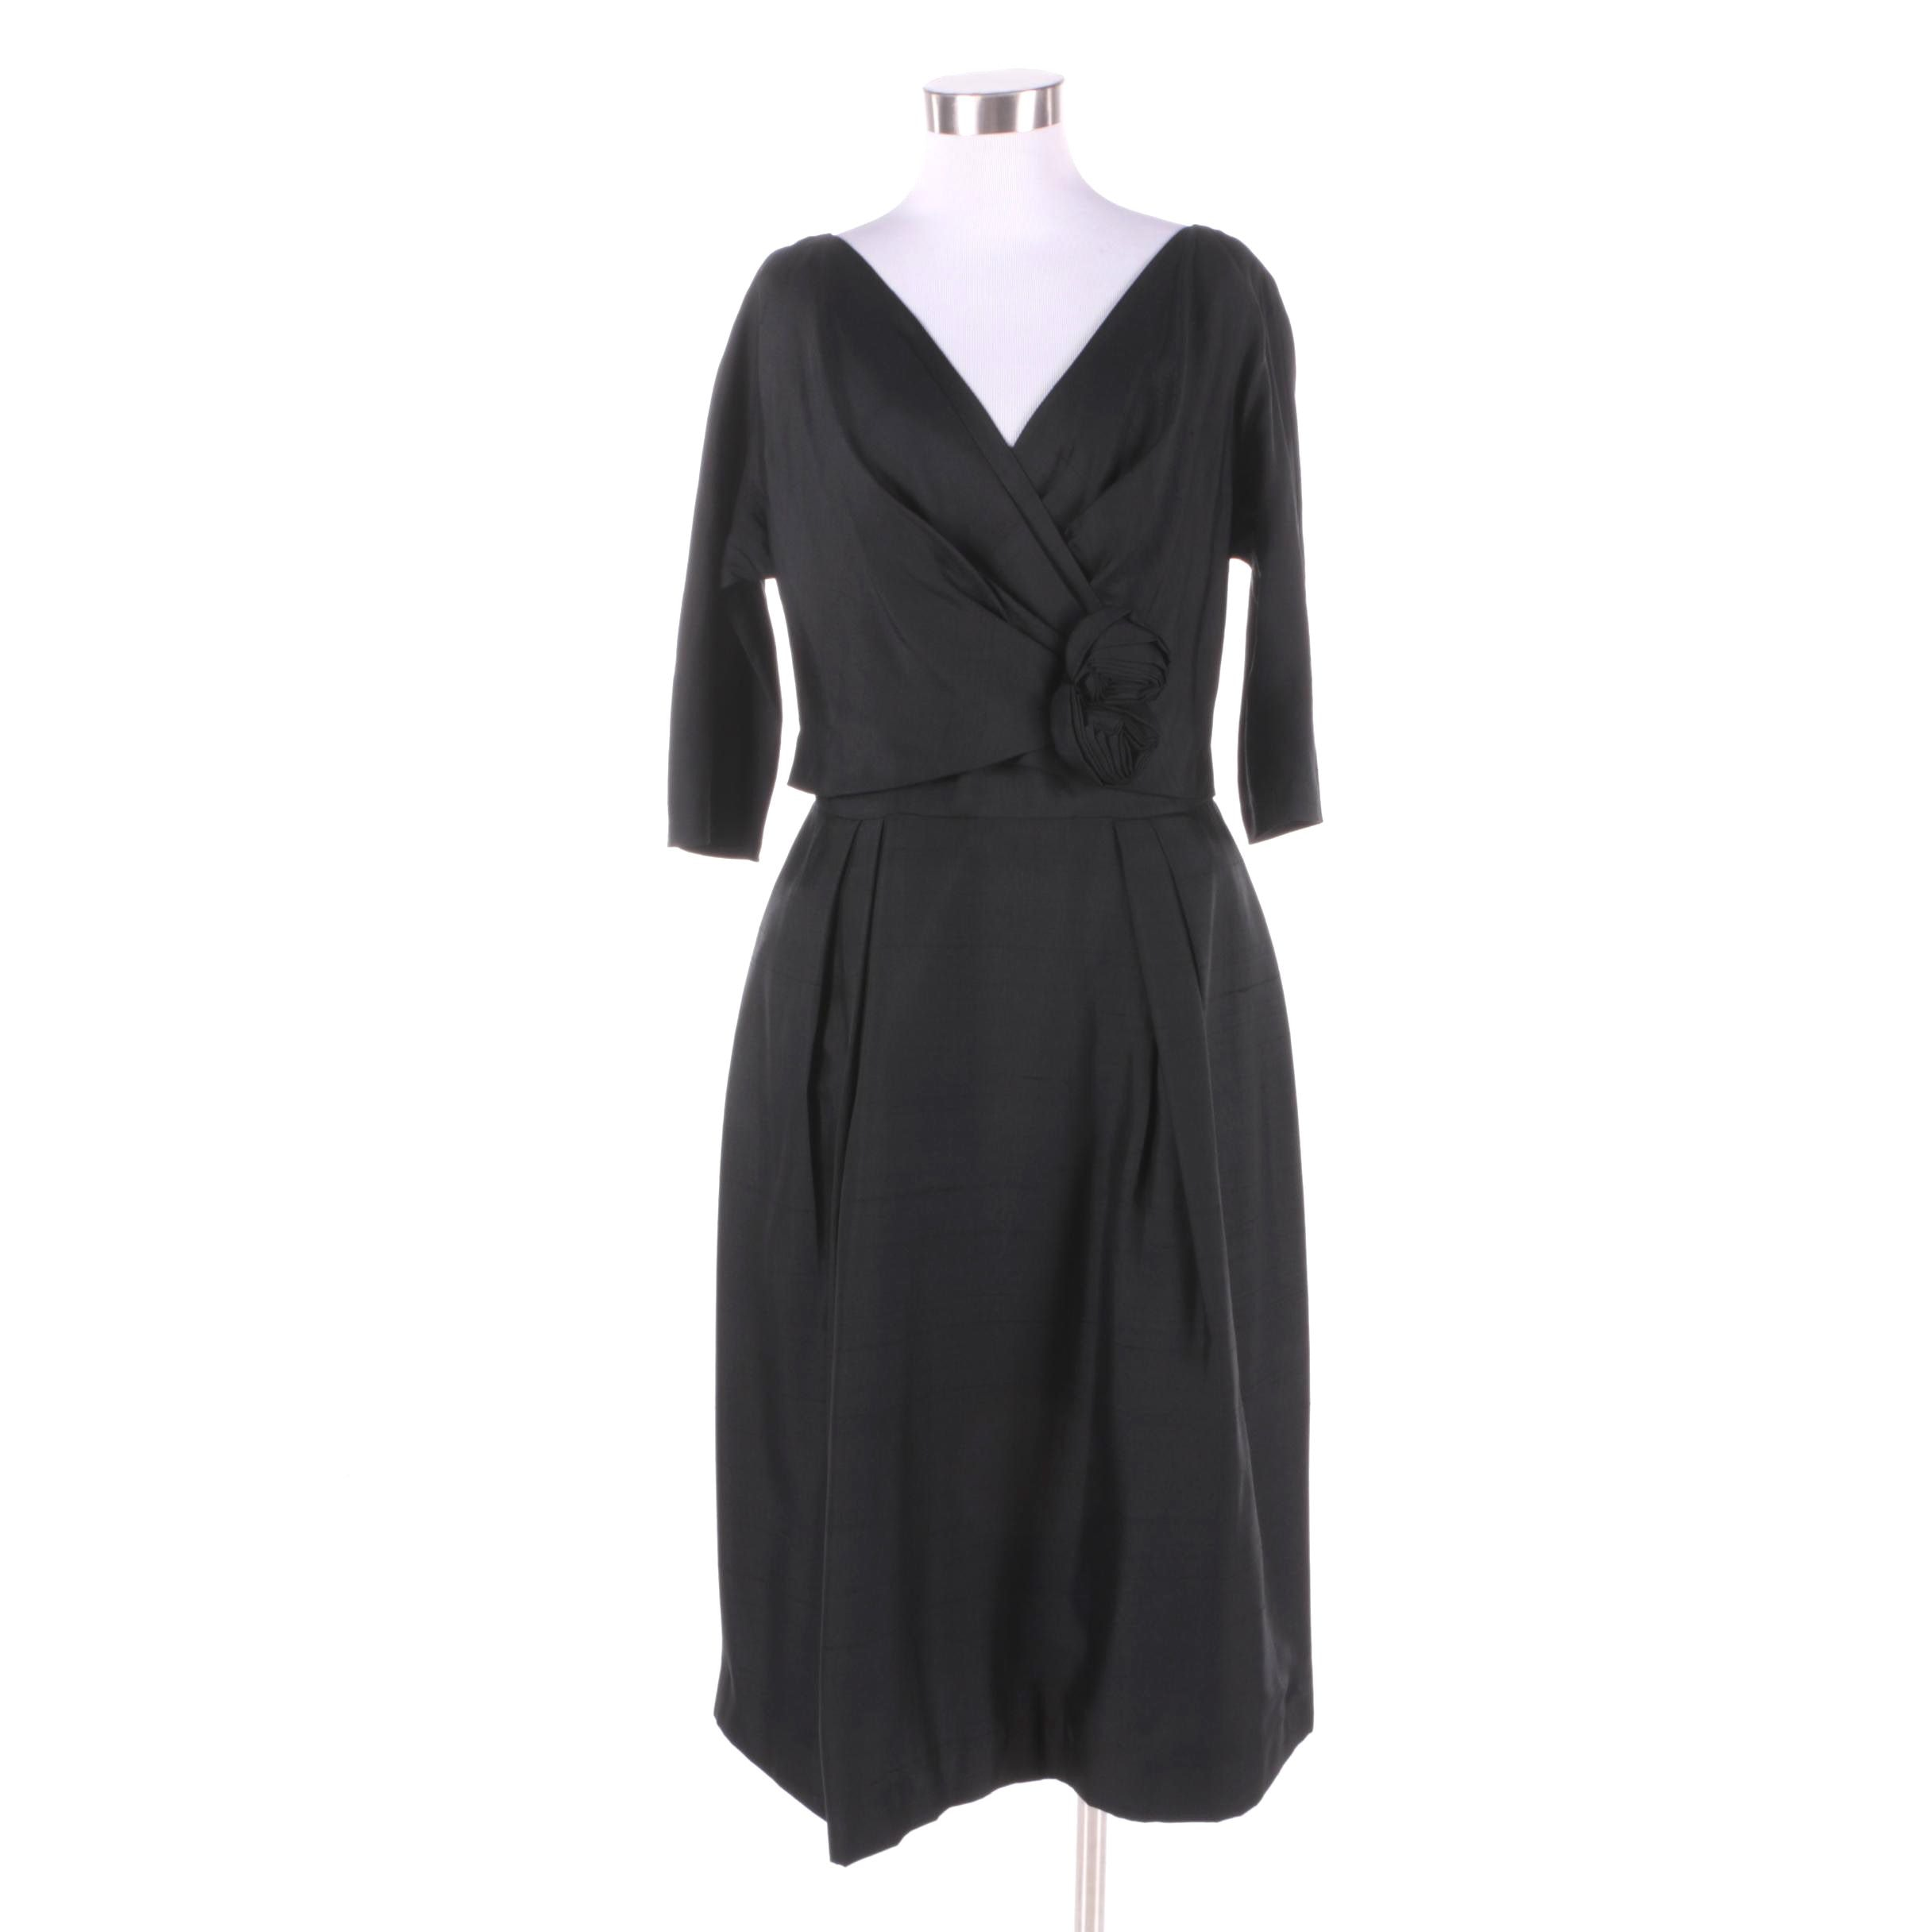 1950s Vintage Black Silk Cocktail Dress with Wrap Top and Rose Detail